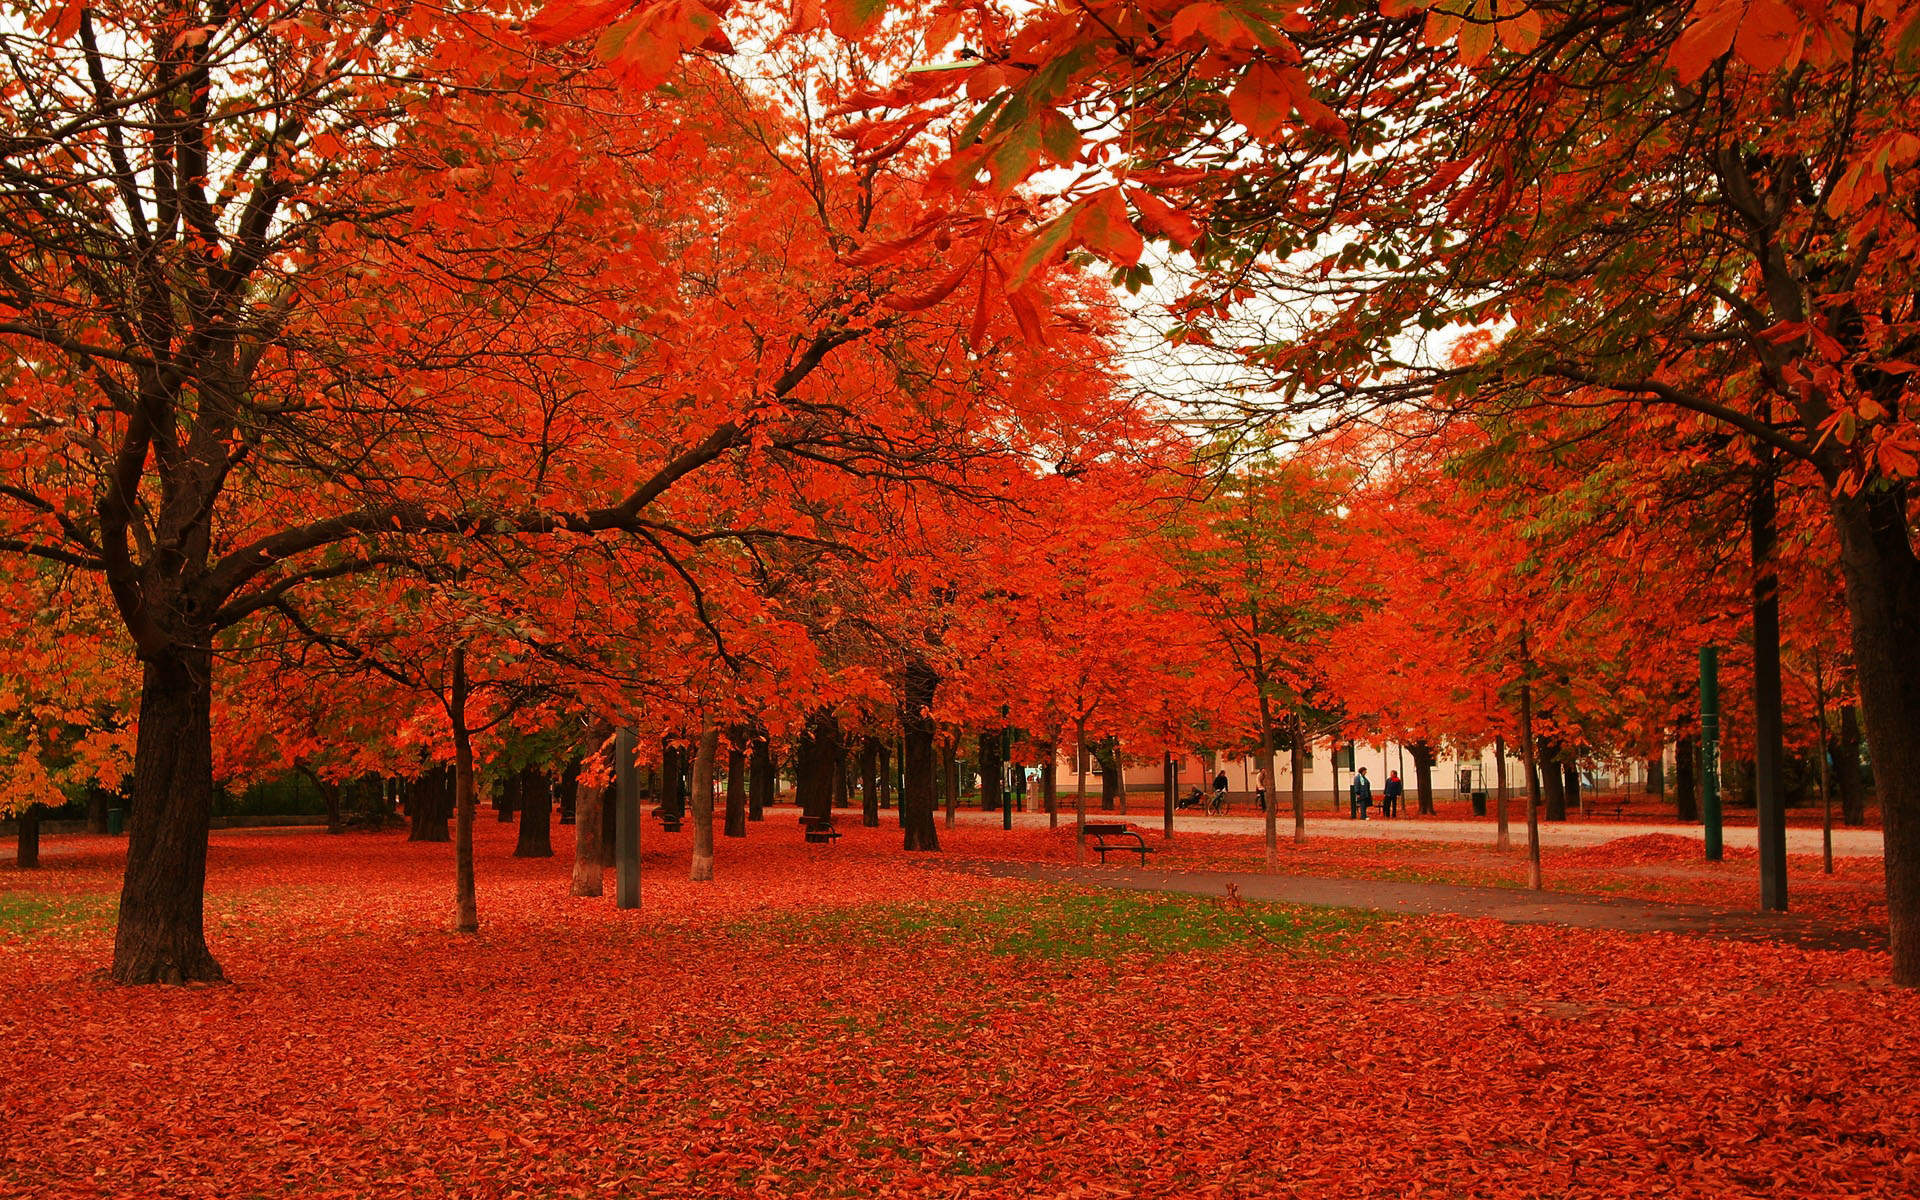 Download Red leaves autumn trees Wallpaper Wallpapers 1920x1200